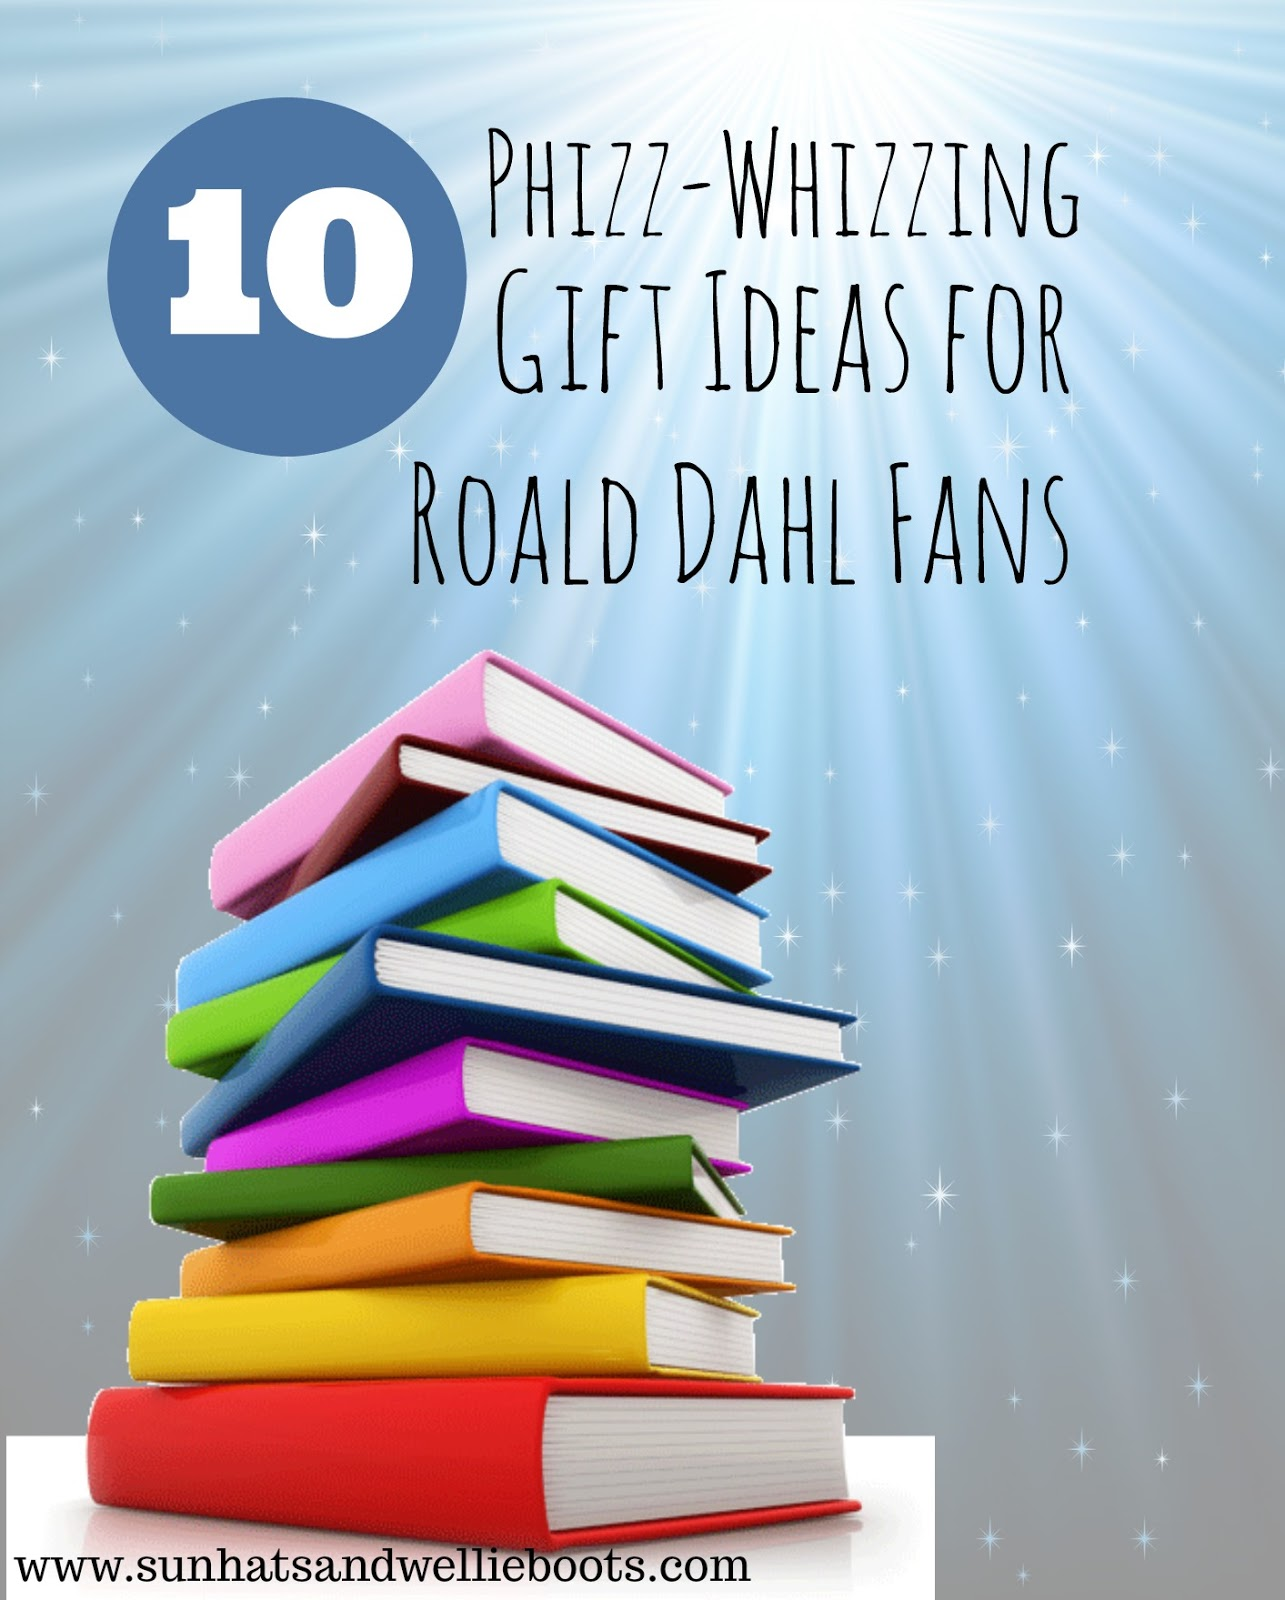 sun hats wellie boots 10 phizz whizzing gift ideas for roald dahl